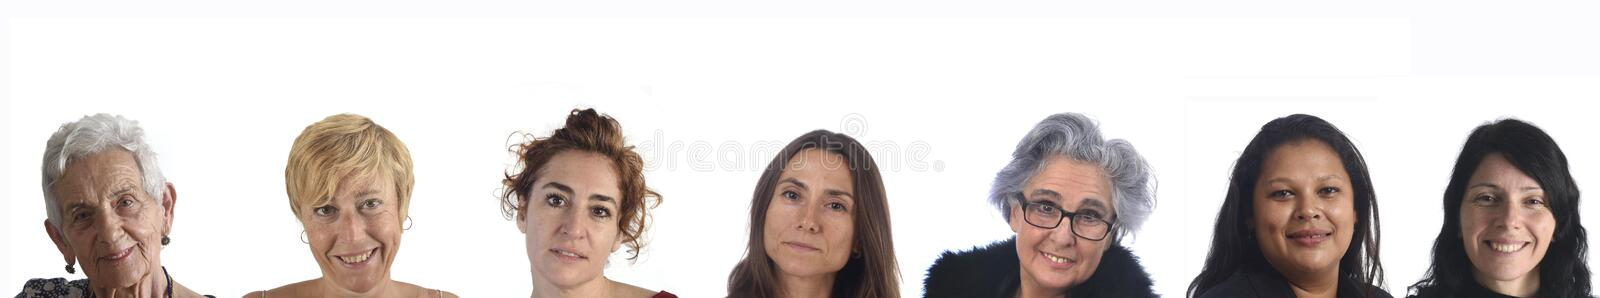 Portraits of several women on white background royalty free stock photography